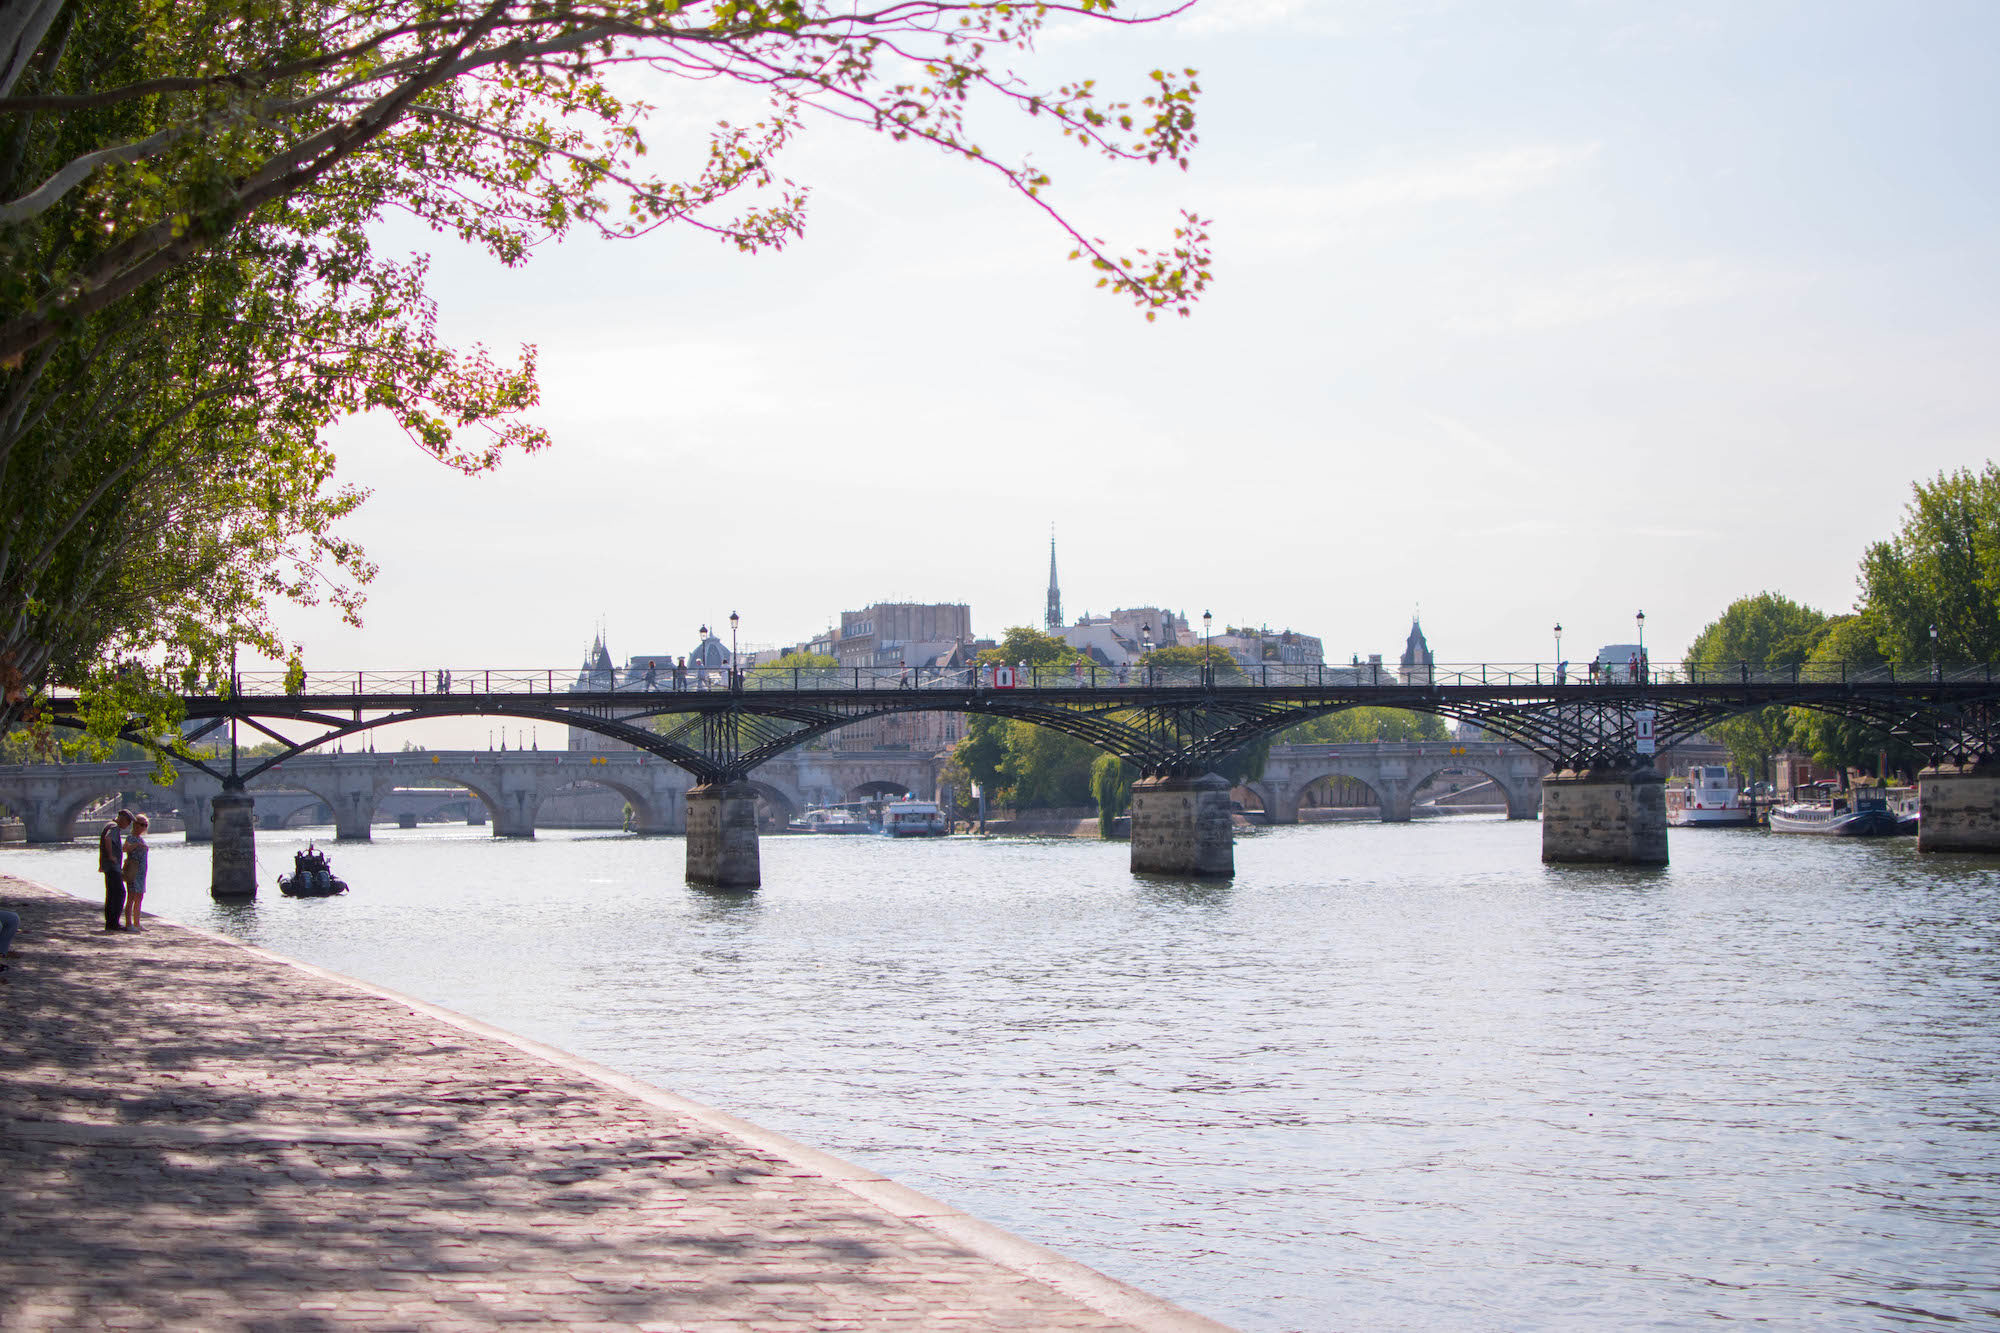 The Pont des Arts, a famed bridge in Paris, mainly known for where where the love lock trend started, with Notre Dame's spire peeking out from behind.